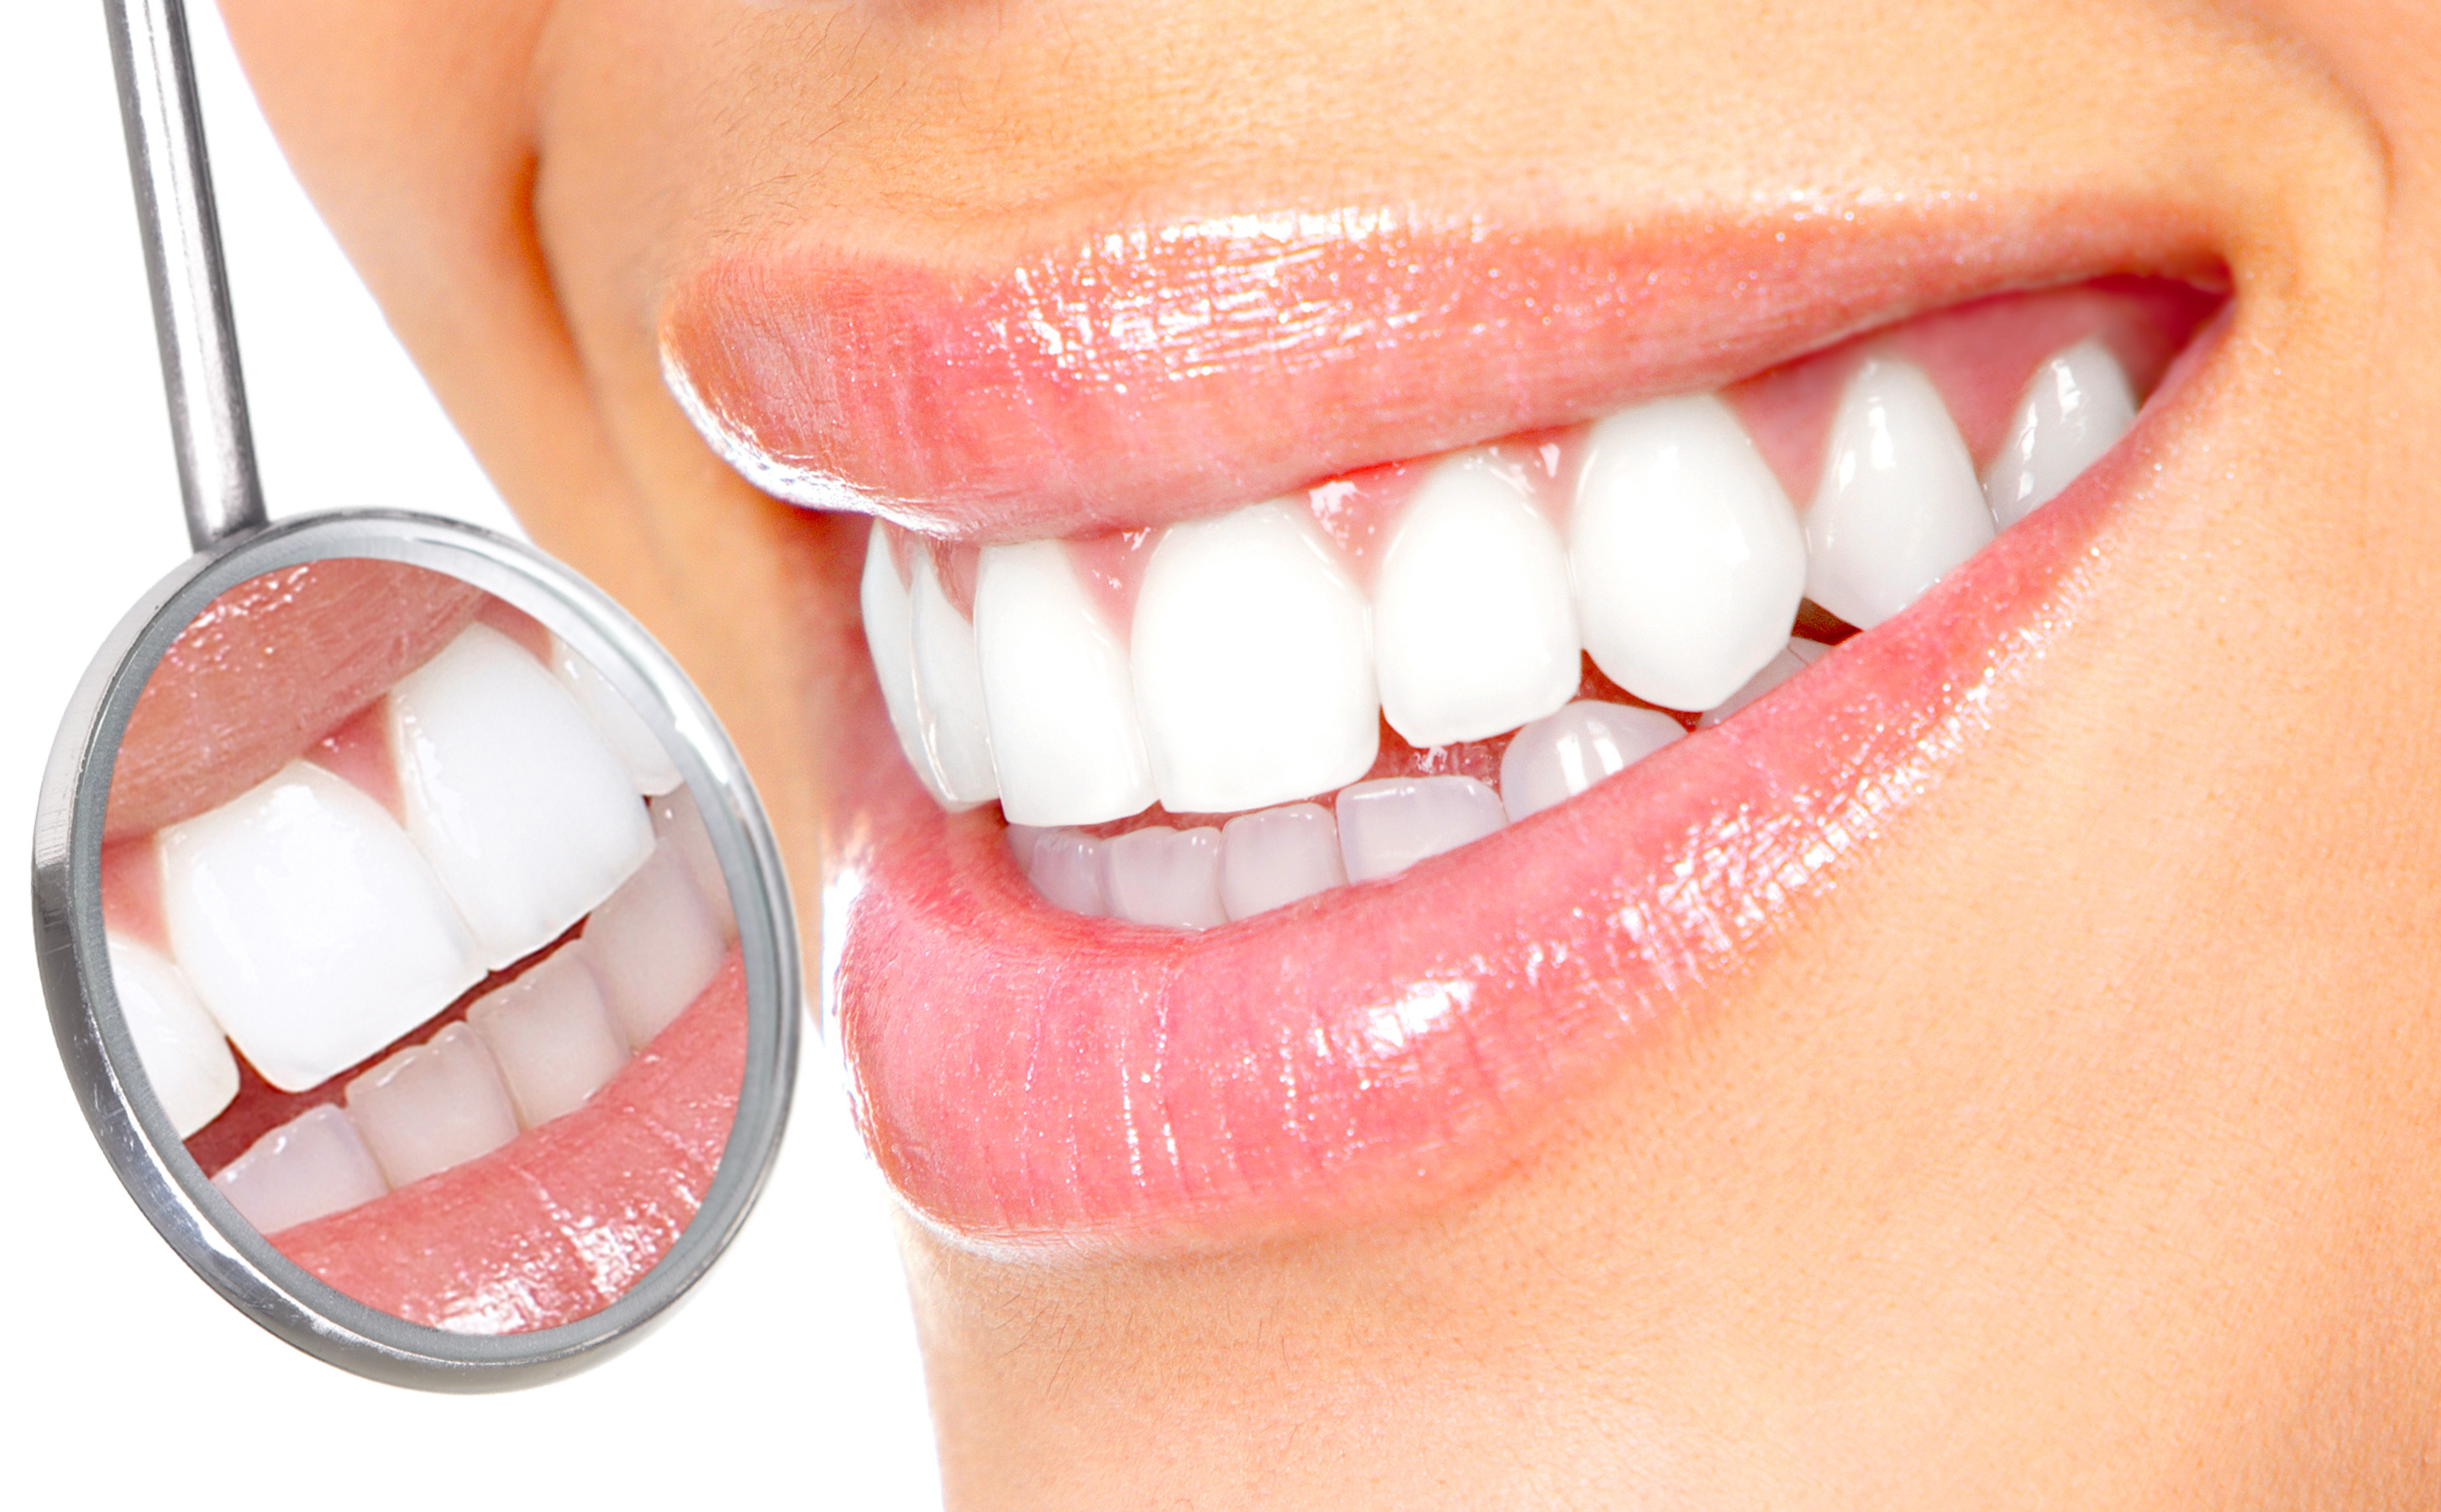 Advantages and disadvantages of teeth whitening